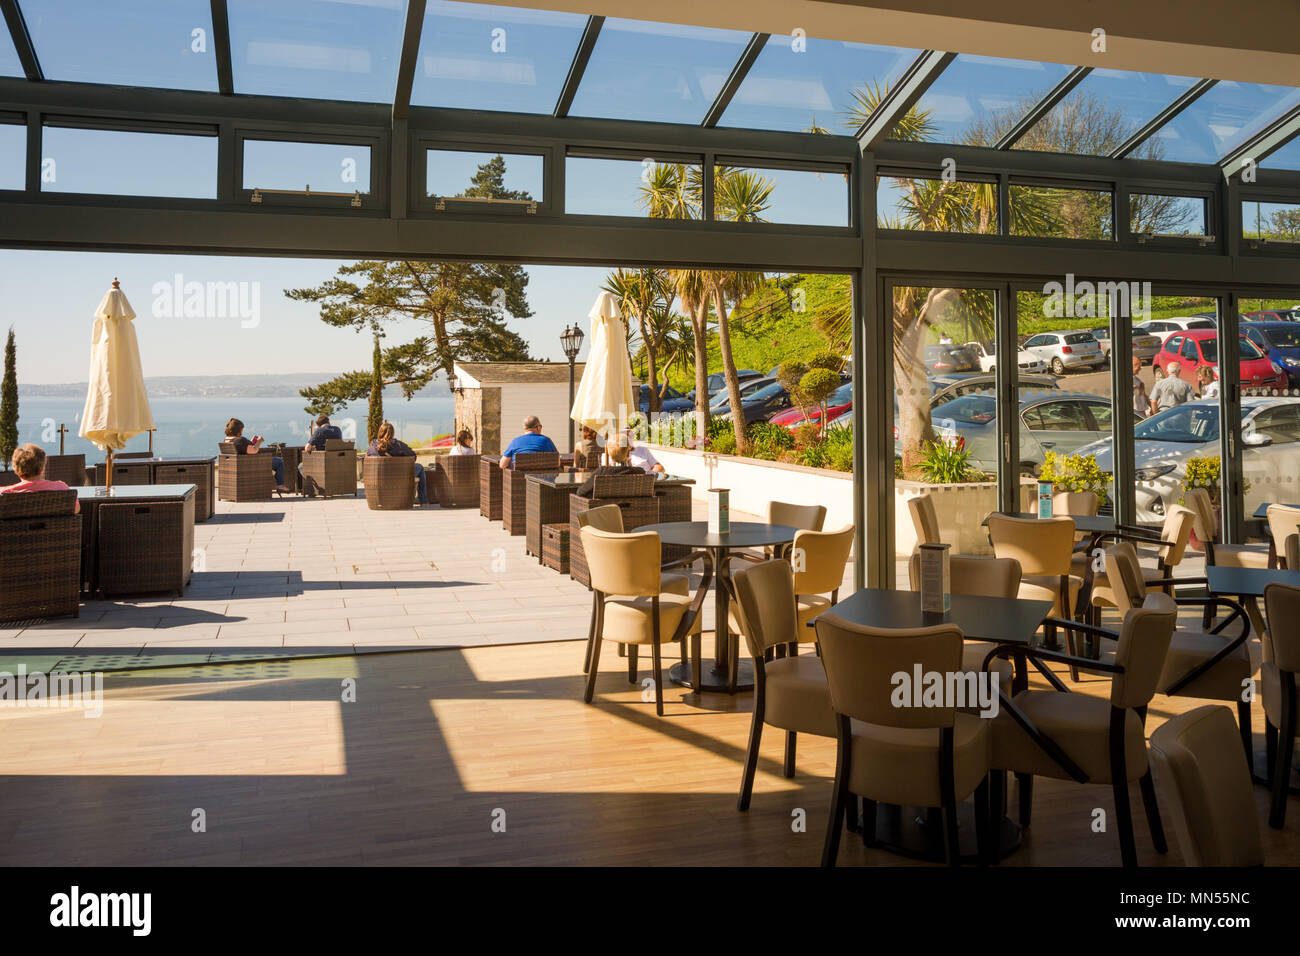 Headland hotel, Torquay, Devon UK Stock Photo: 185125736 ...